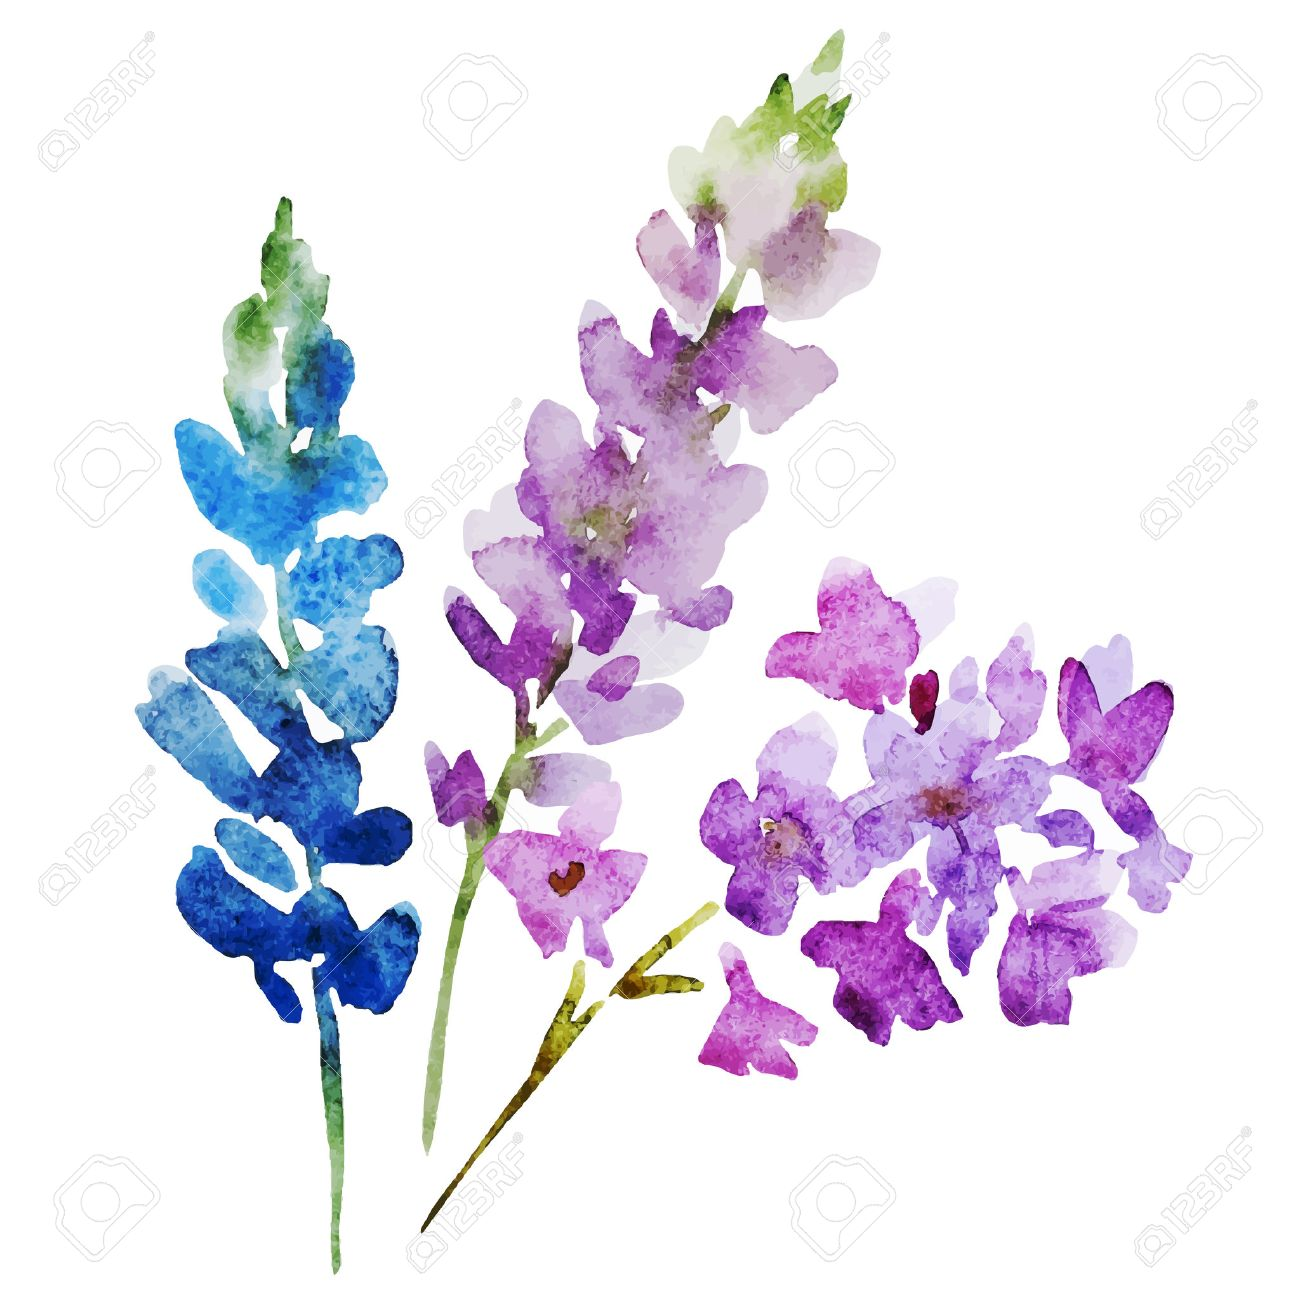 Beautiful Image With Nice Watercolor Flowers Stock Vector